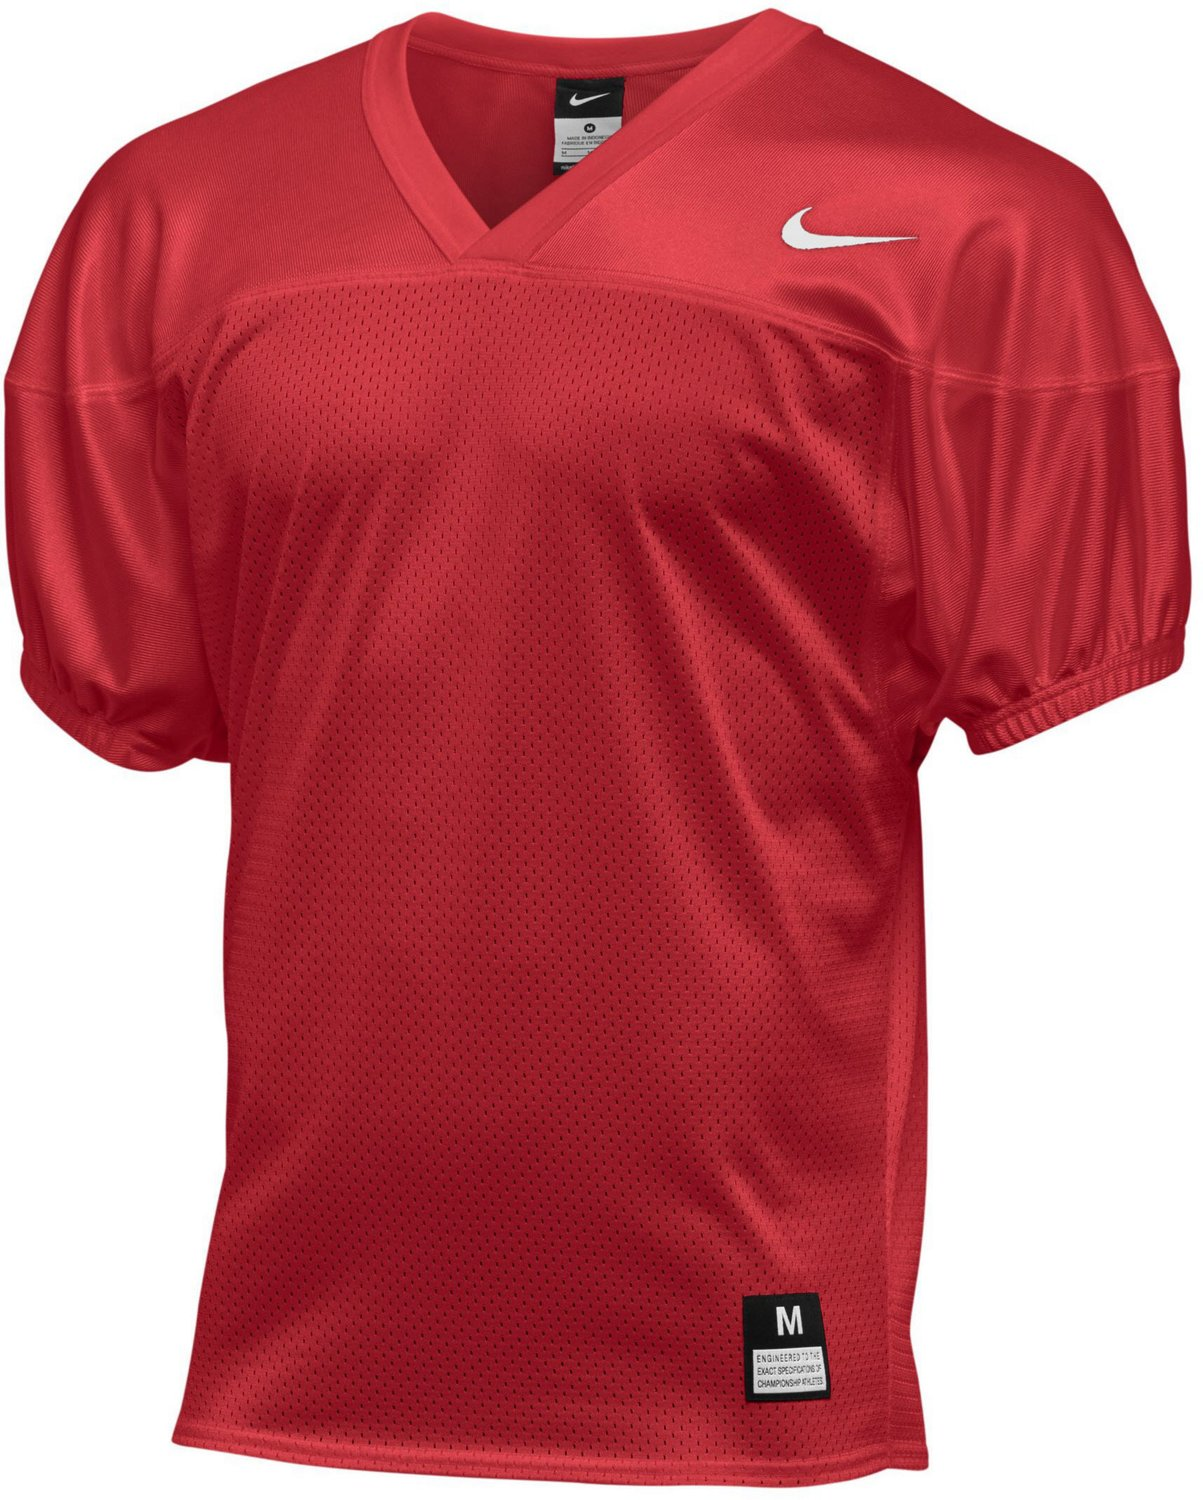 4f33375b782 Display product reviews for Nike Men s Core Practice Jersey